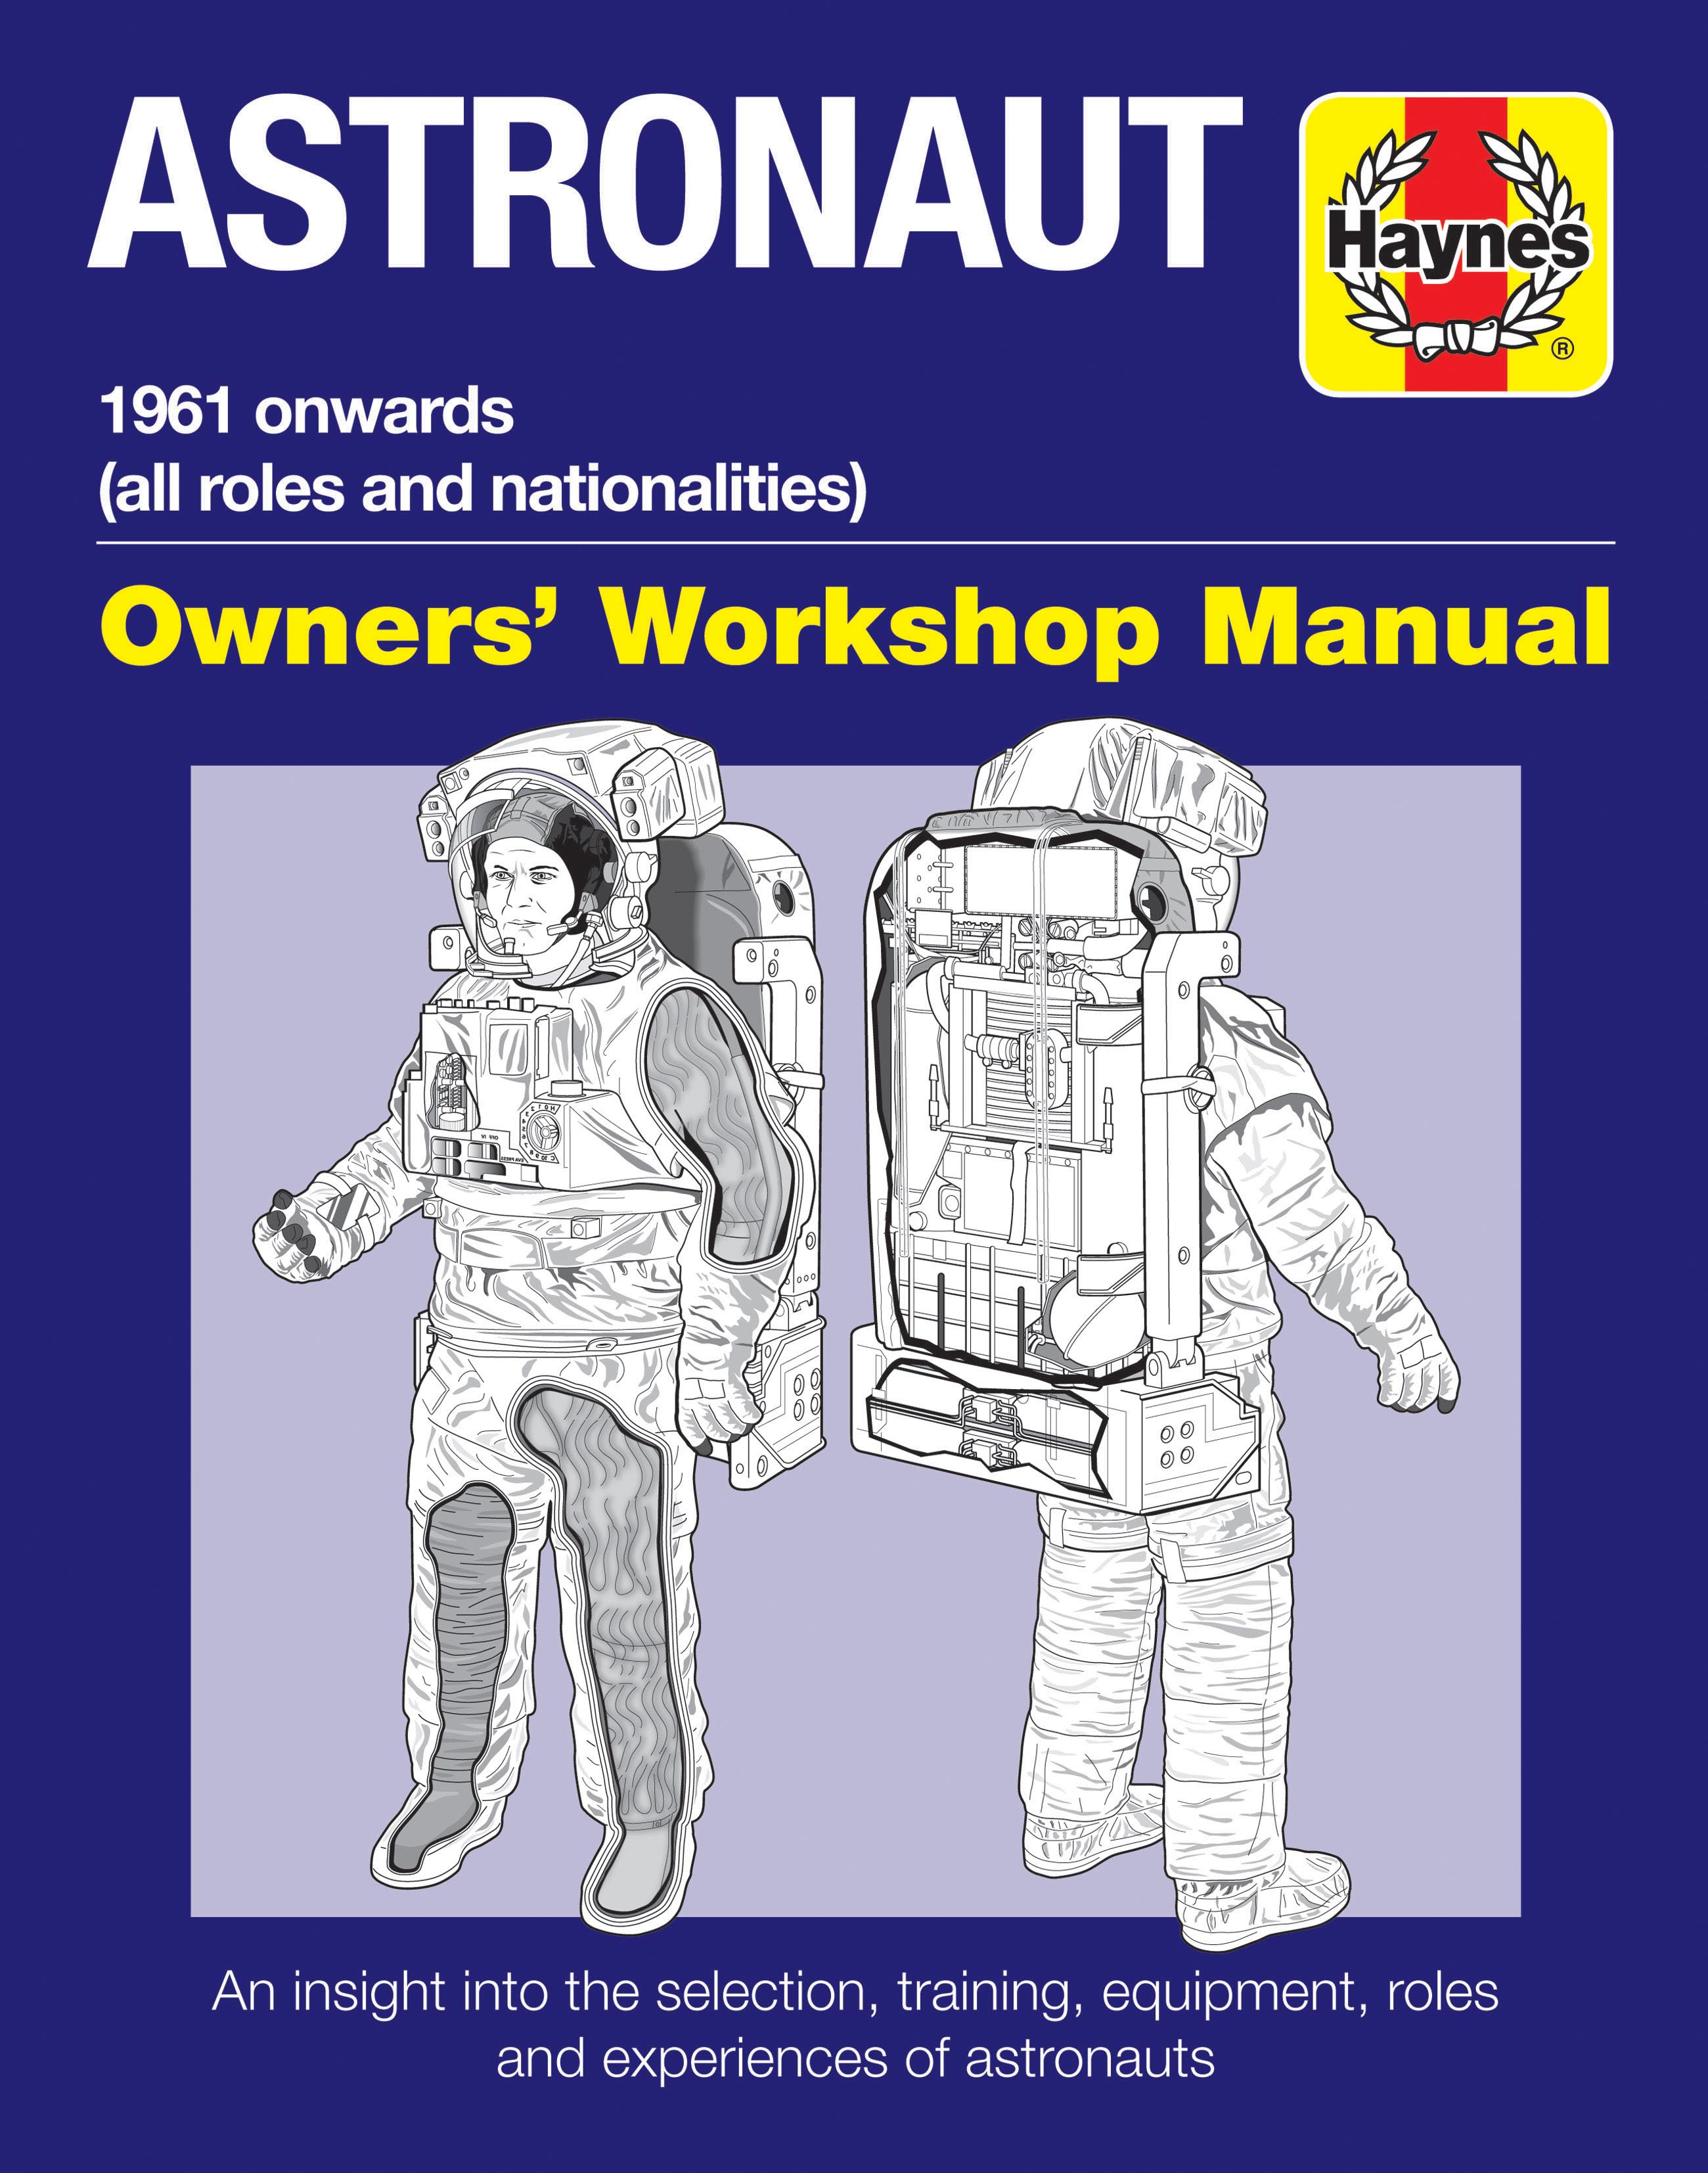 Astronaut Manual - 1961 onwards (all roles and nationalities)